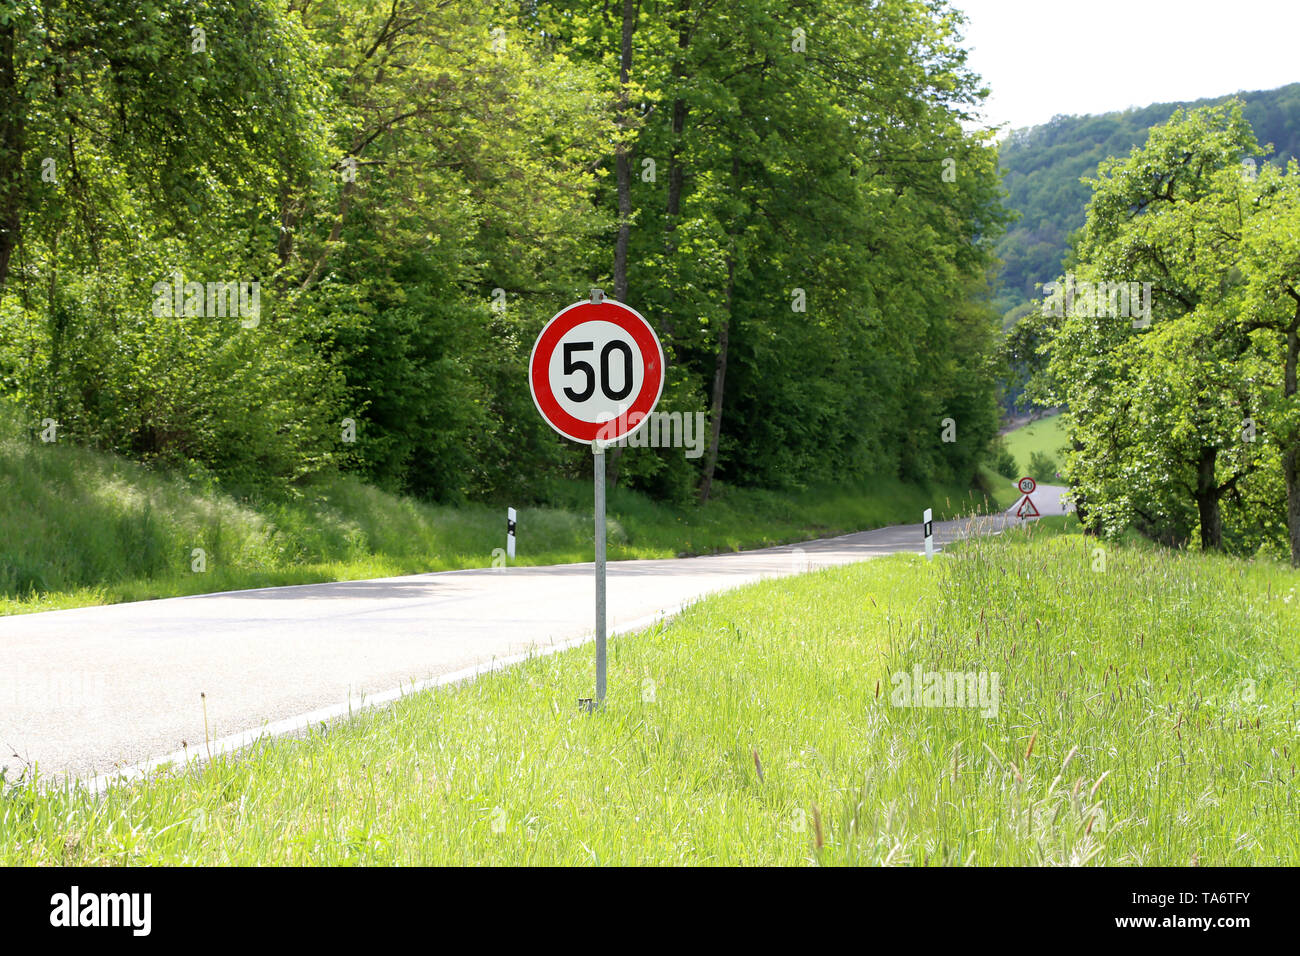 Various road signs on the road warn of danger. - Stock Image